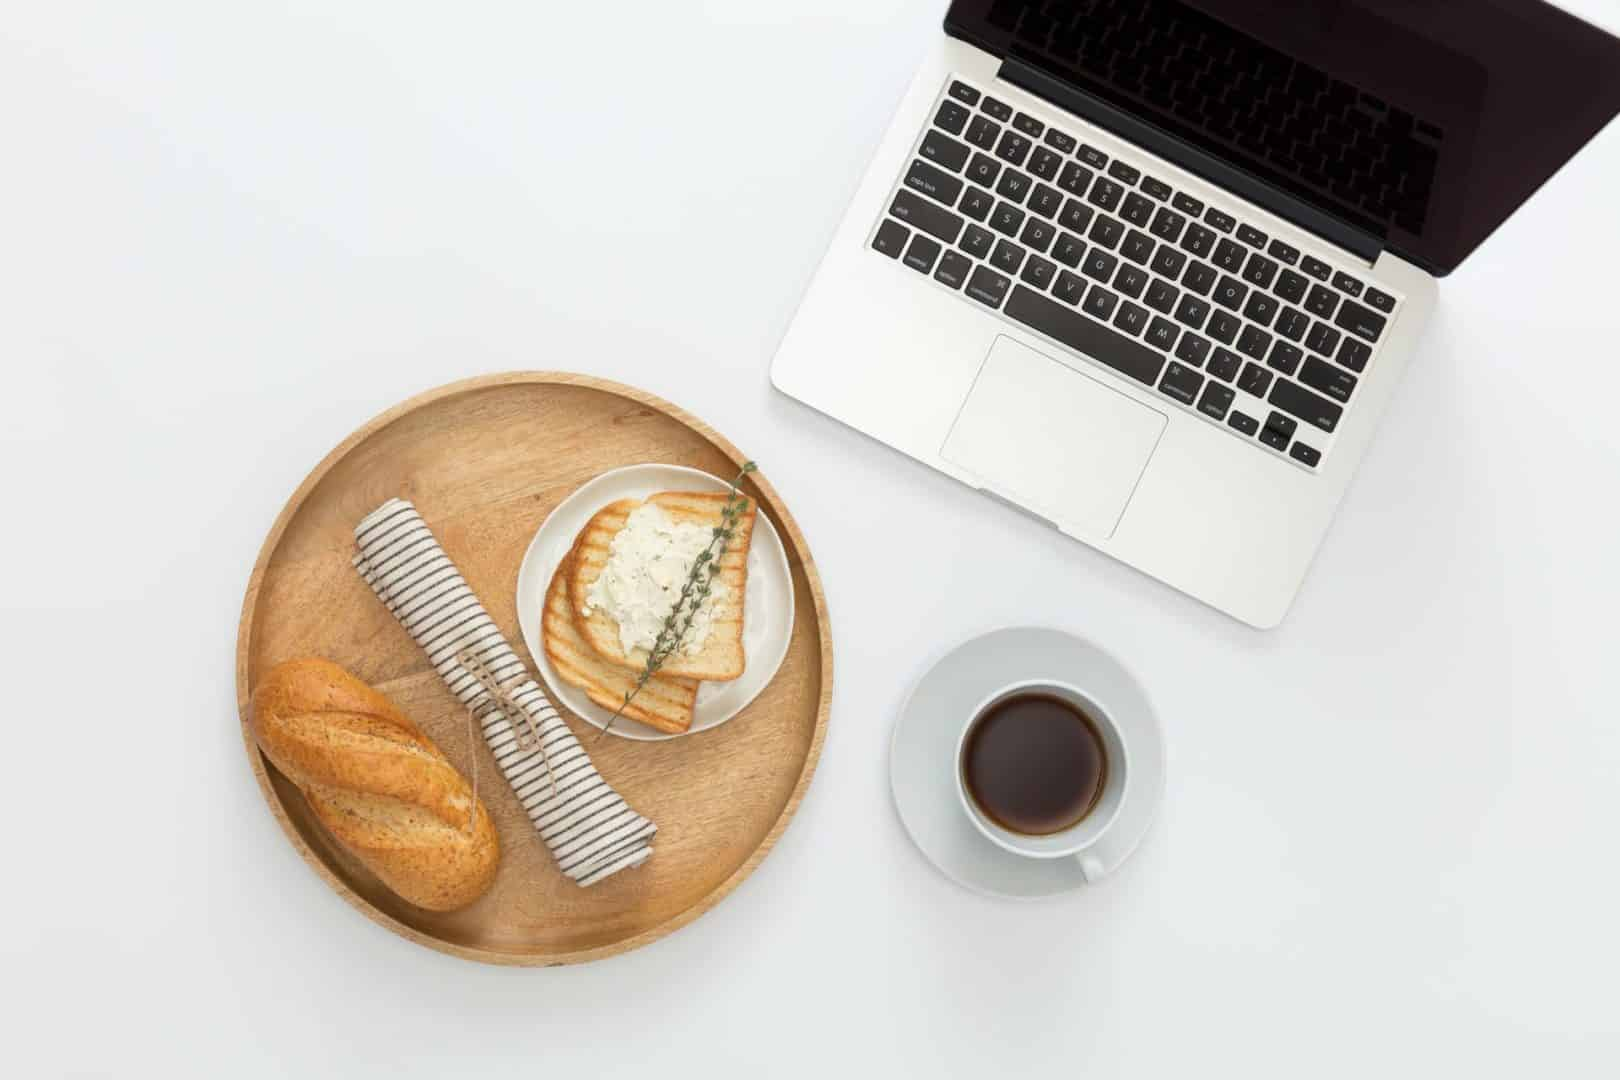 https://addons.topdigitaltrends.net/wp-content/uploads/2020/07/breakfast-at-home-workplace.jpg